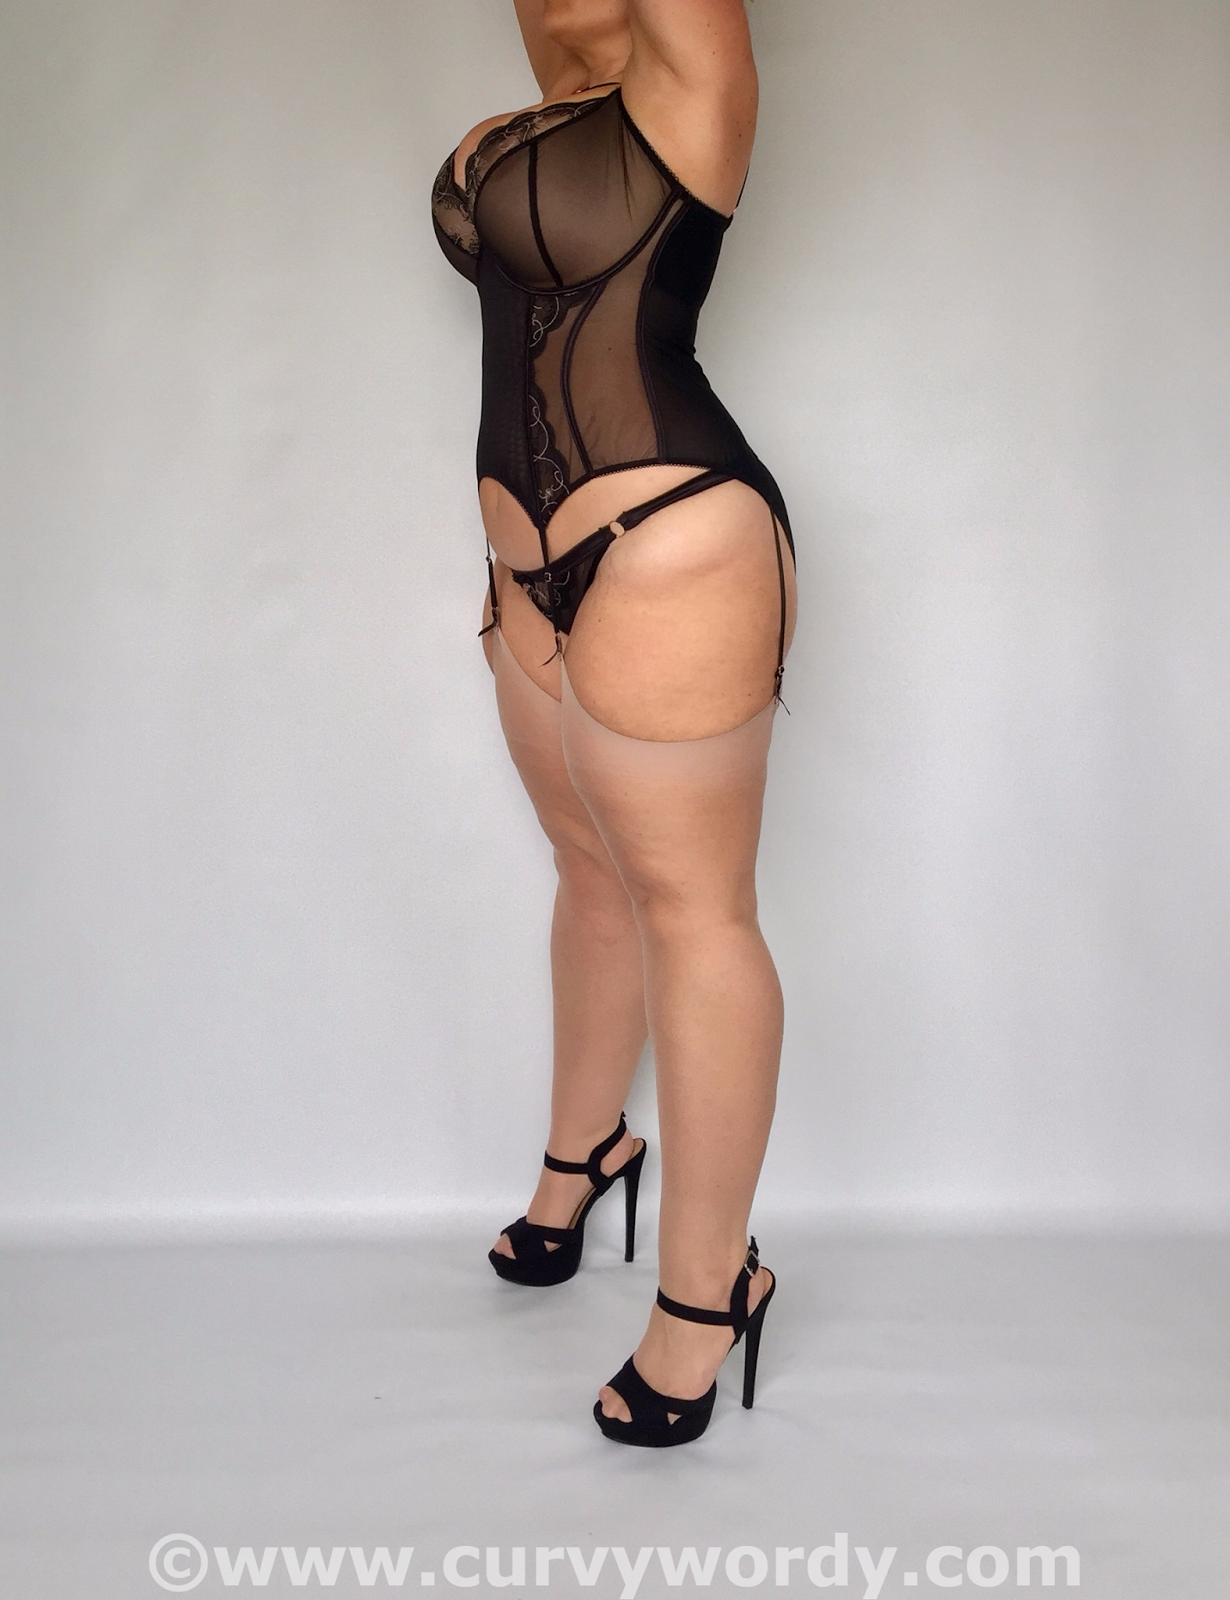 Scantilly Surrender Basque and Peep Hole Briefs